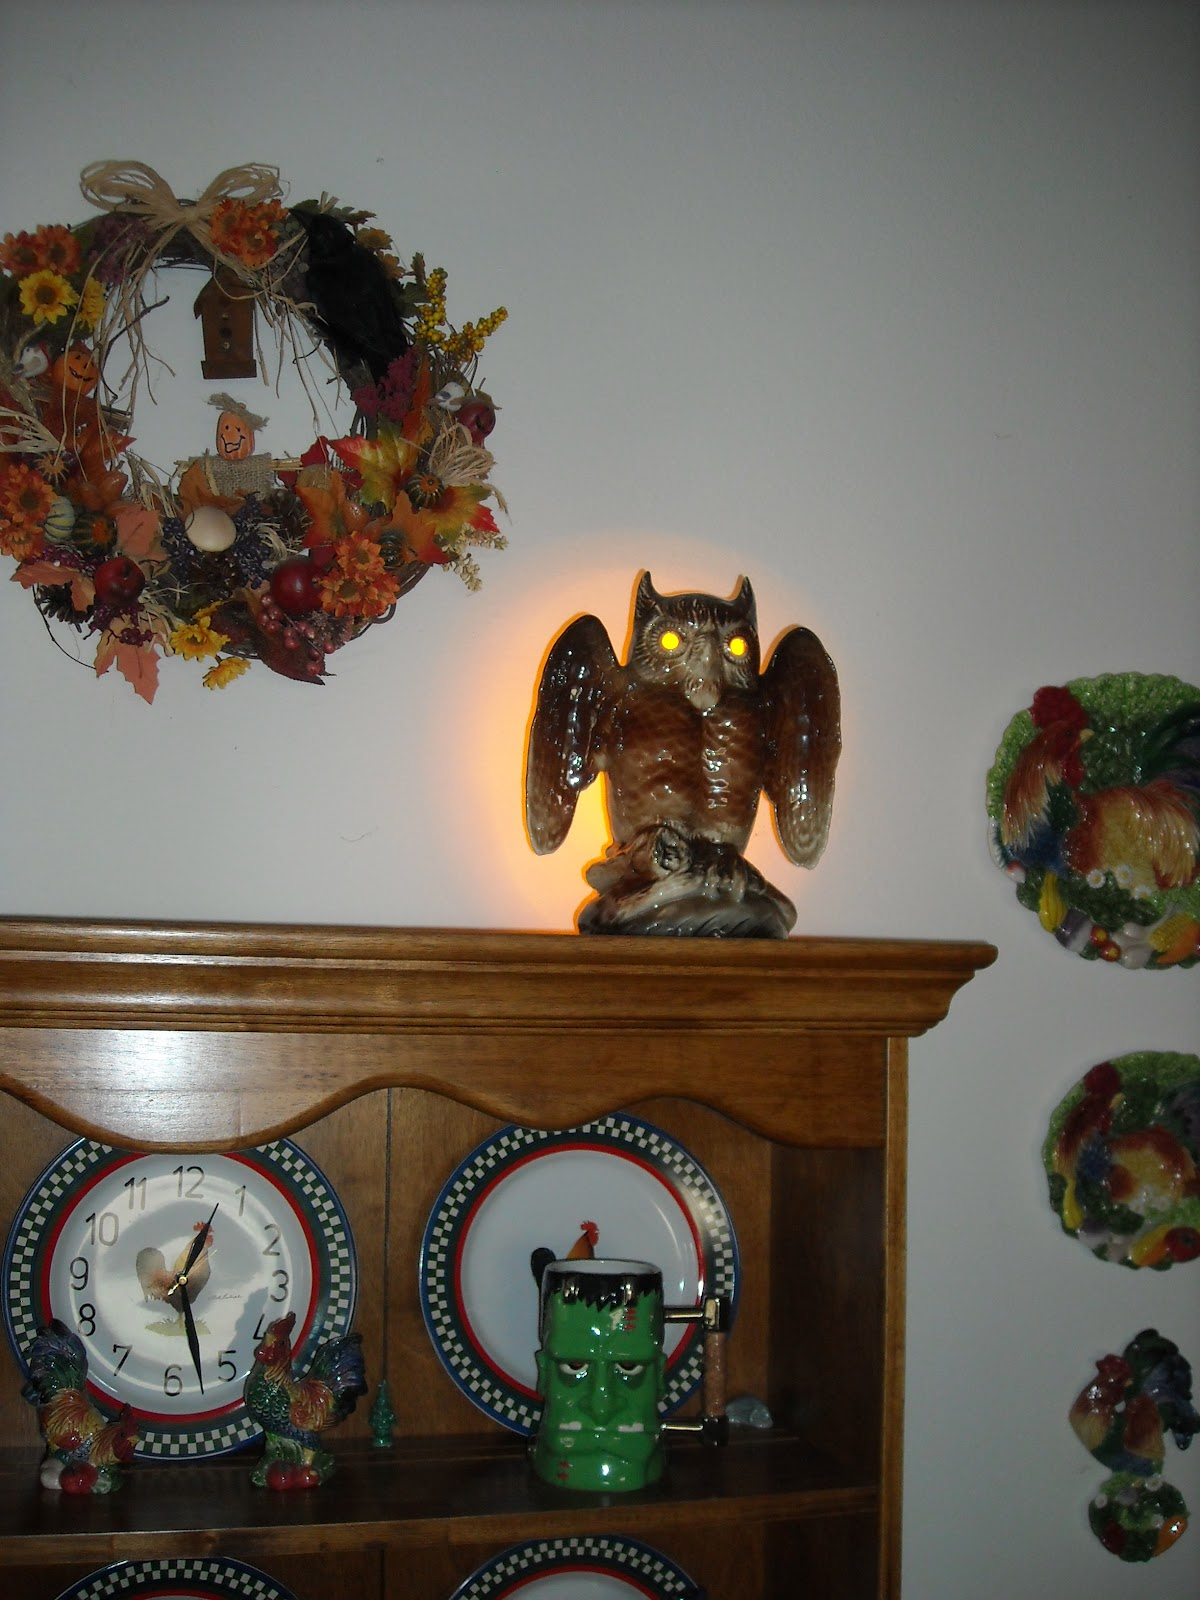 J Thaddeus Ozark S Cookie Jars And Other Larks Gearing